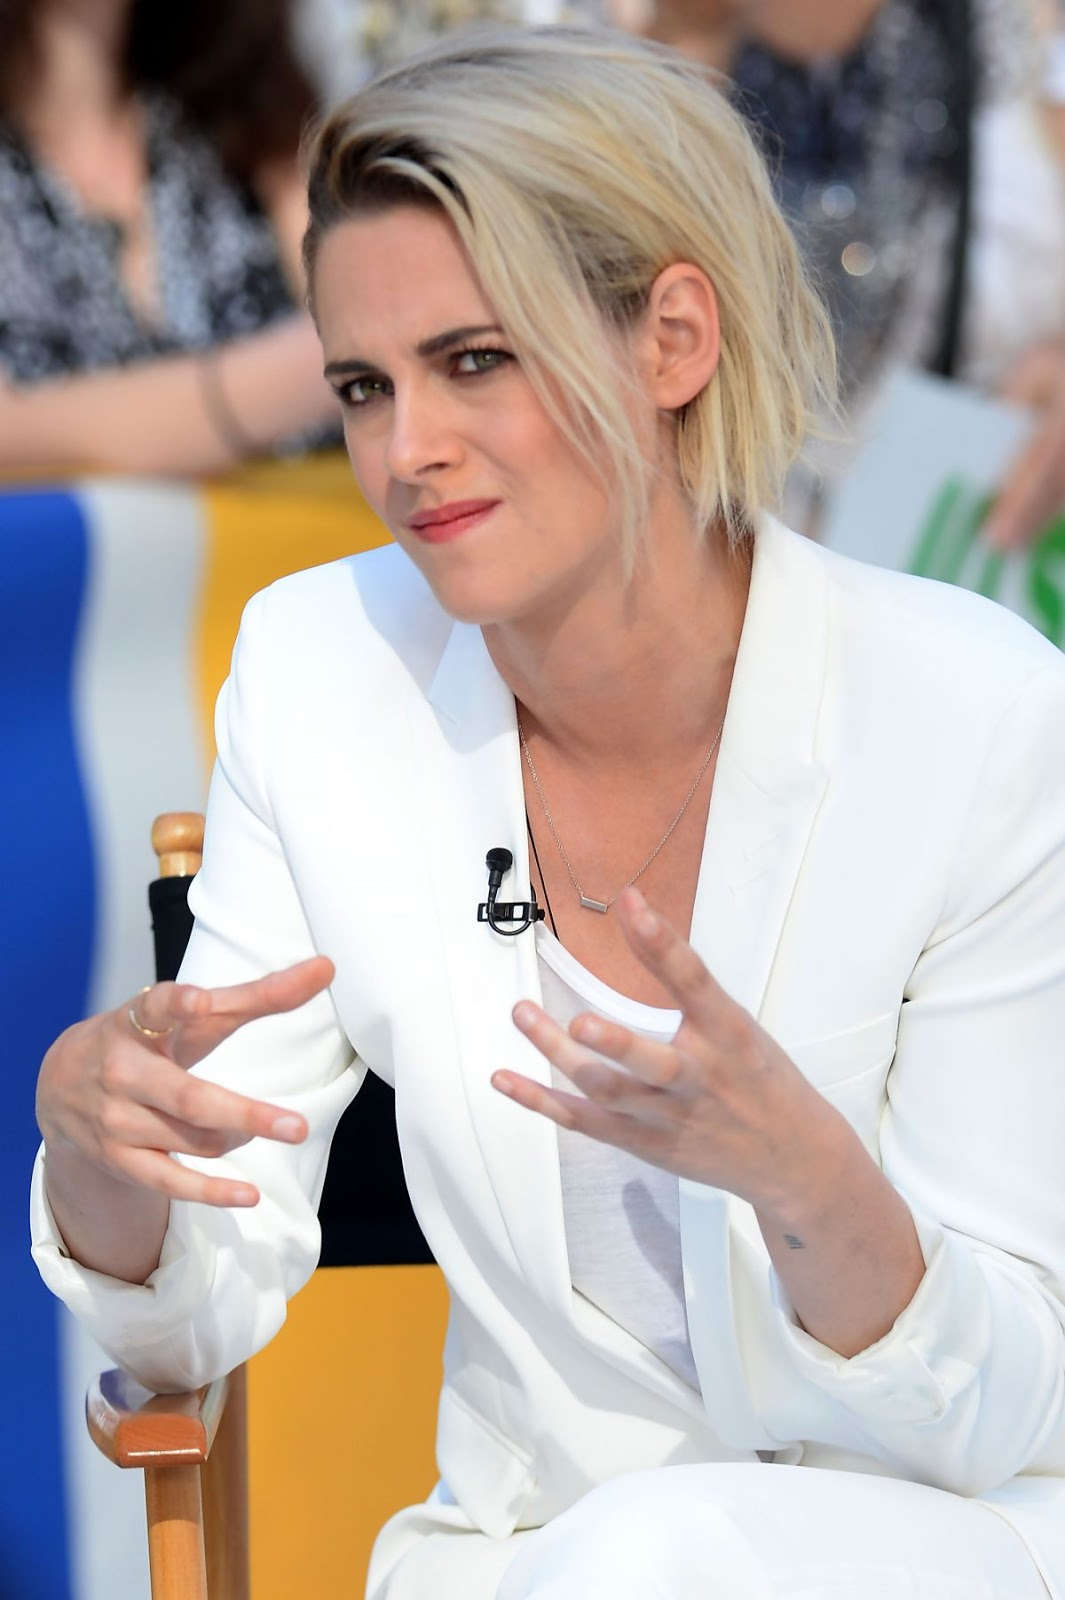 Kristen Stewart On The Set Of Good Morning America